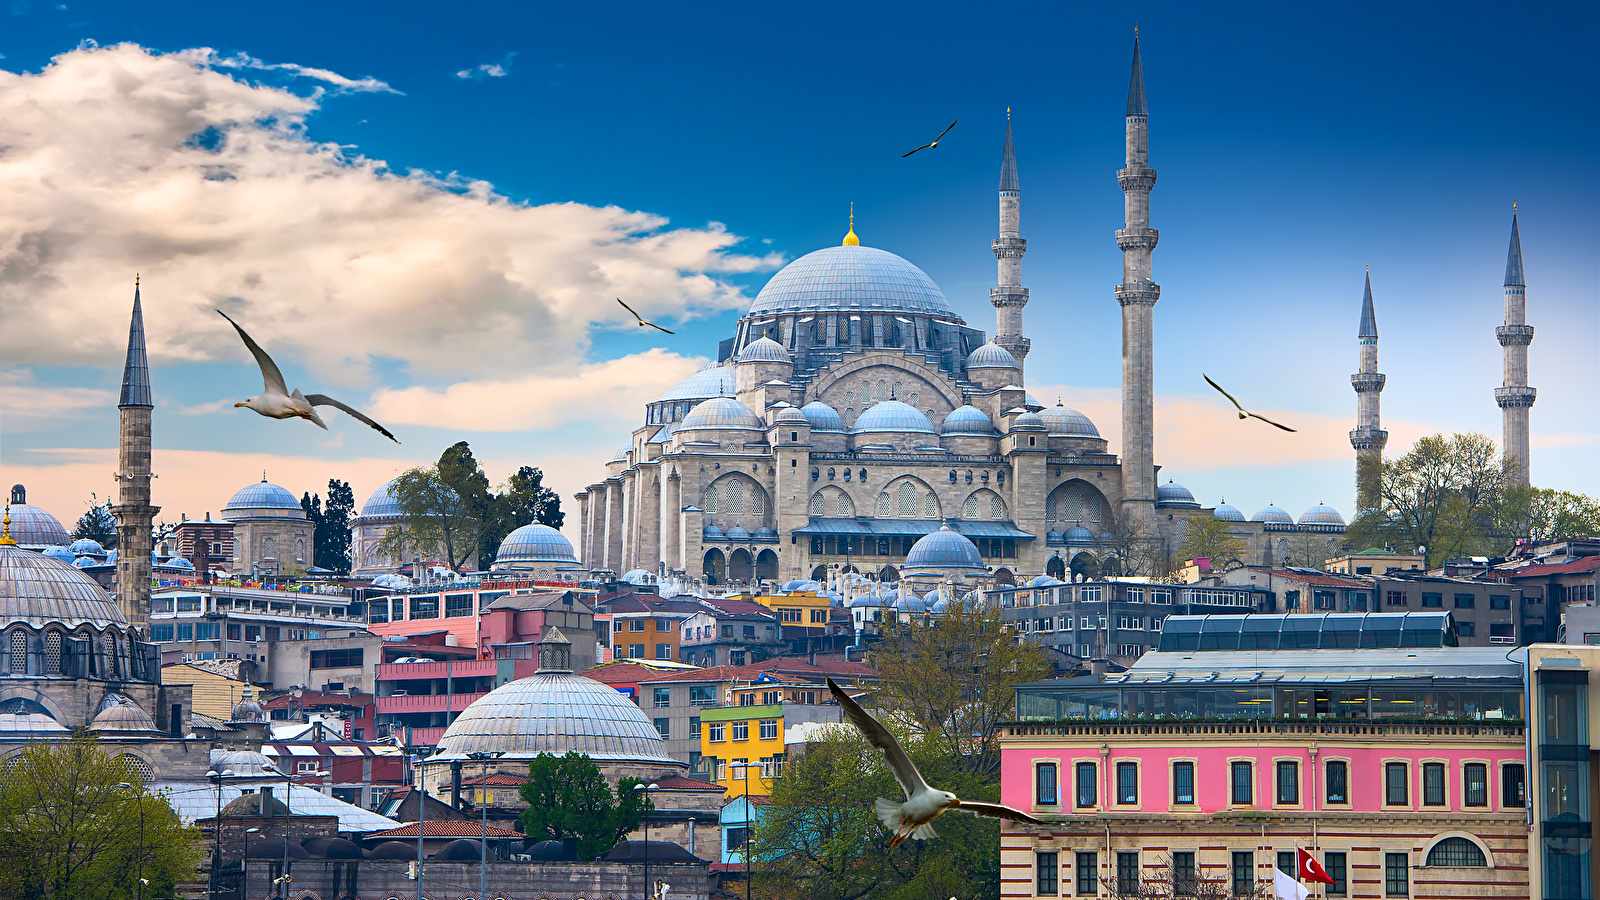 Istanbul_Turkey_Houses_Temples_Birds_Clouds_512150_1600x900